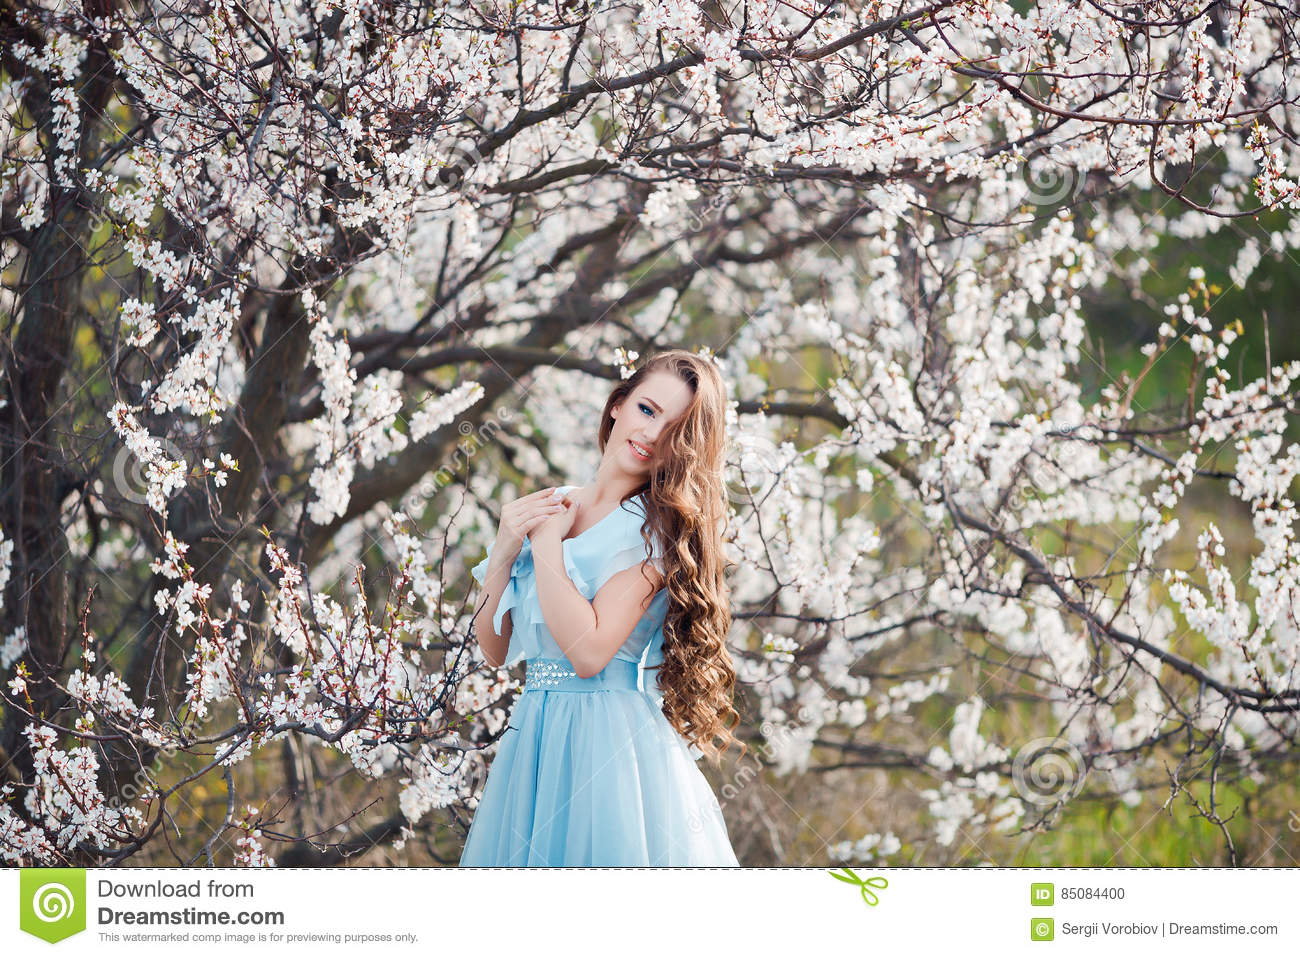 Beauty Girl Outdoors enjoying nature. Beautiful Teenage Model girl with  long healthy blowing hair relaxing in blossom park 5efb56ba1